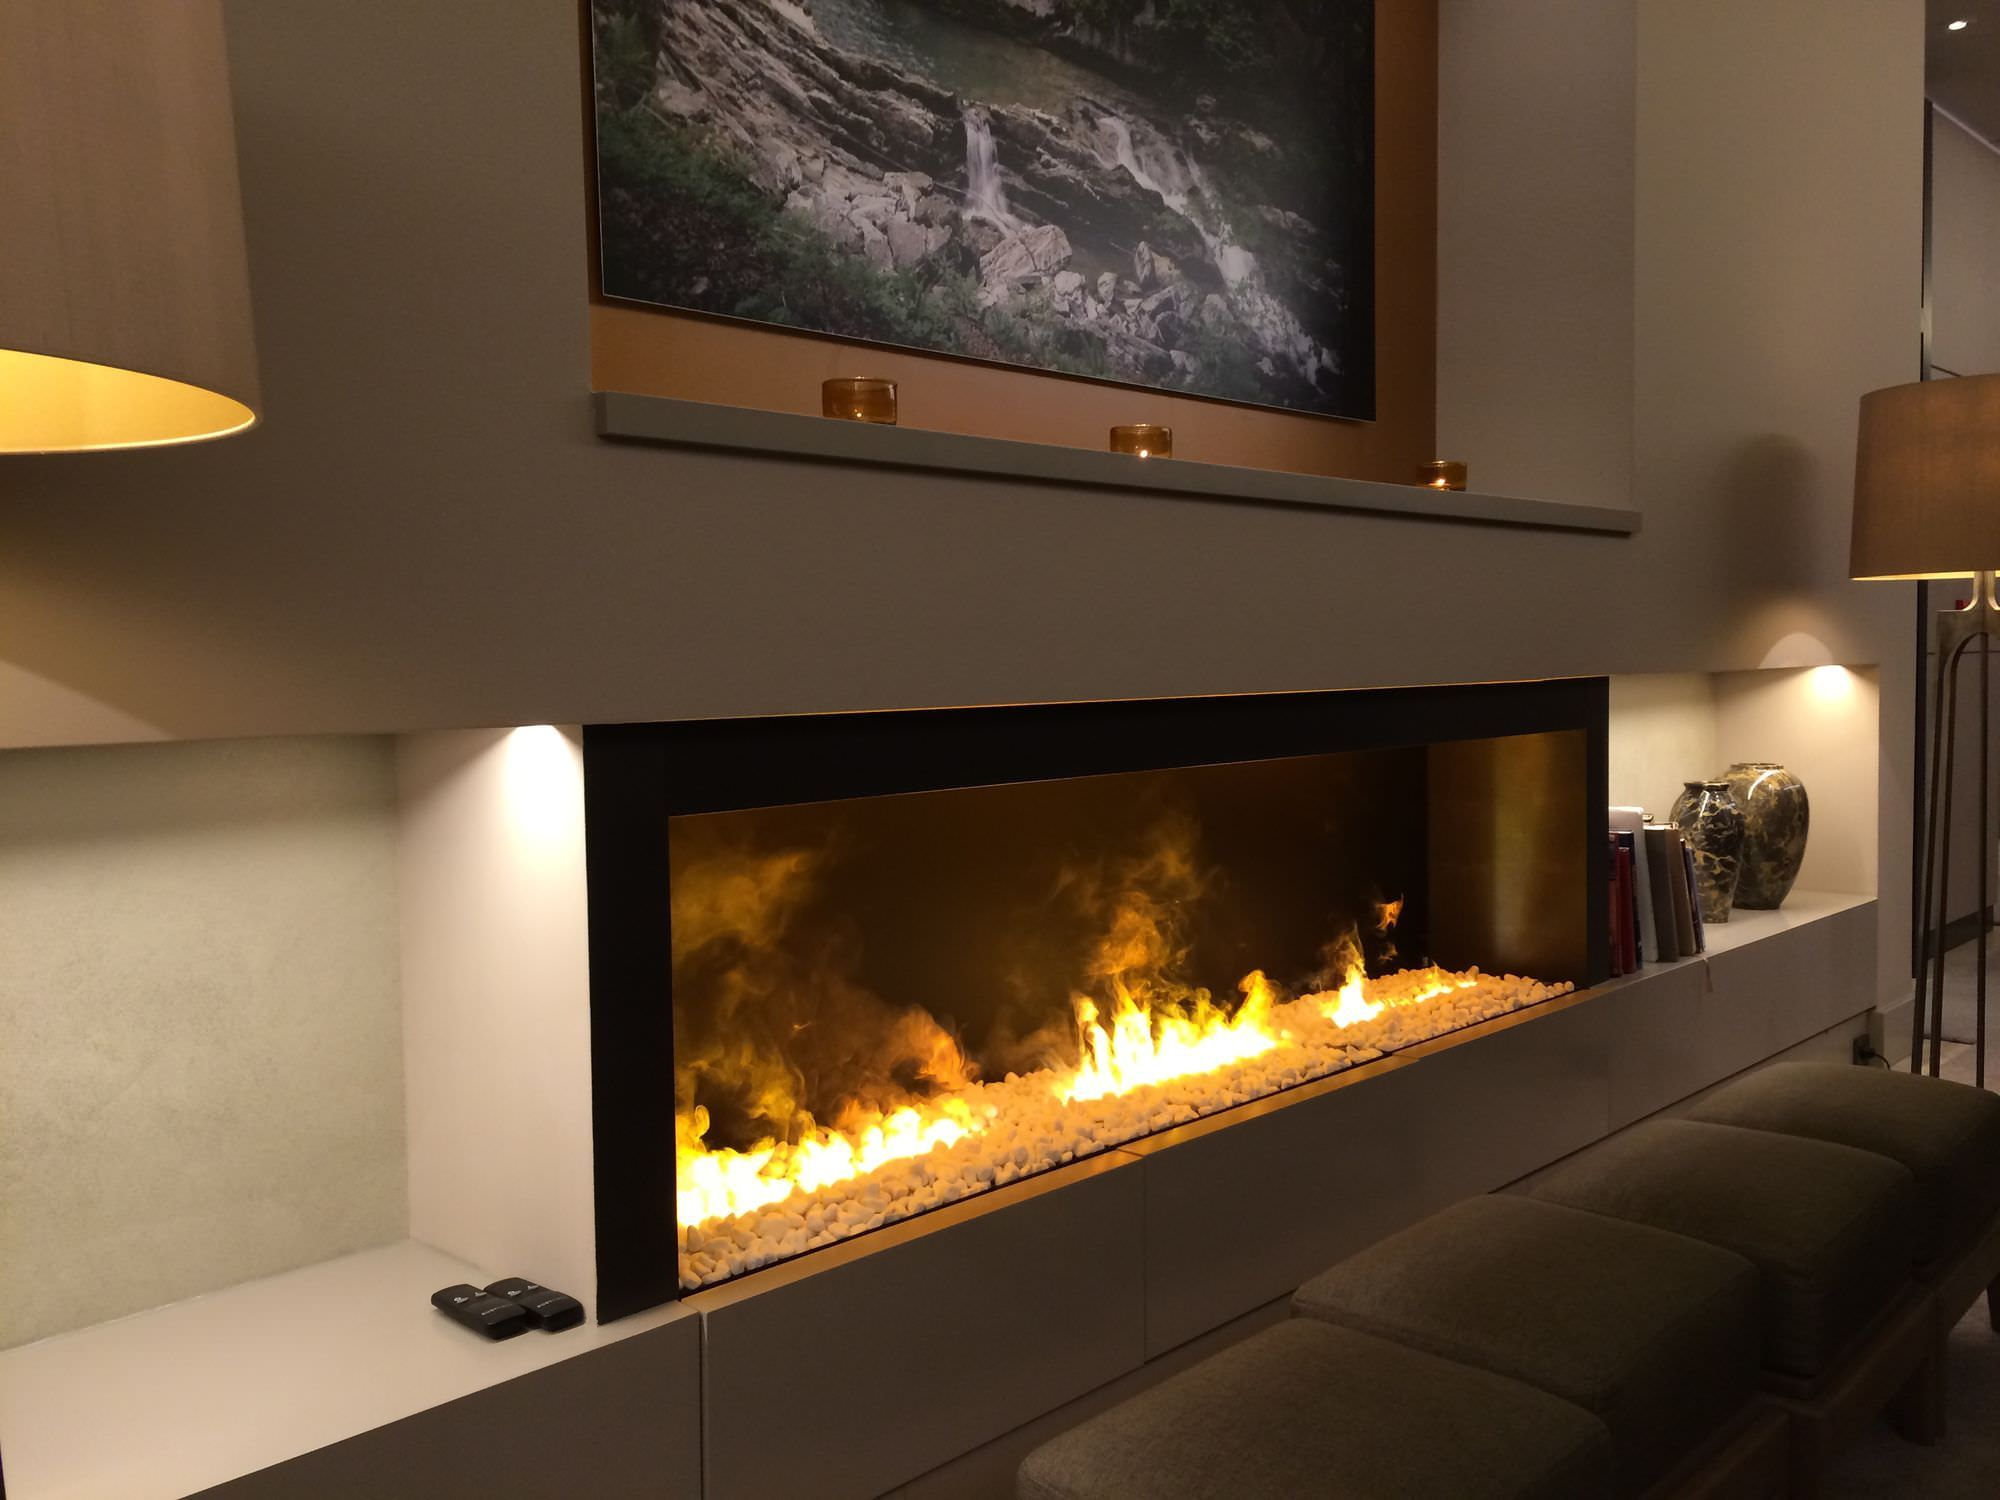 Electrical fireplace insert MODUL L KIESEL Kamin-Design GmbH & Co ...